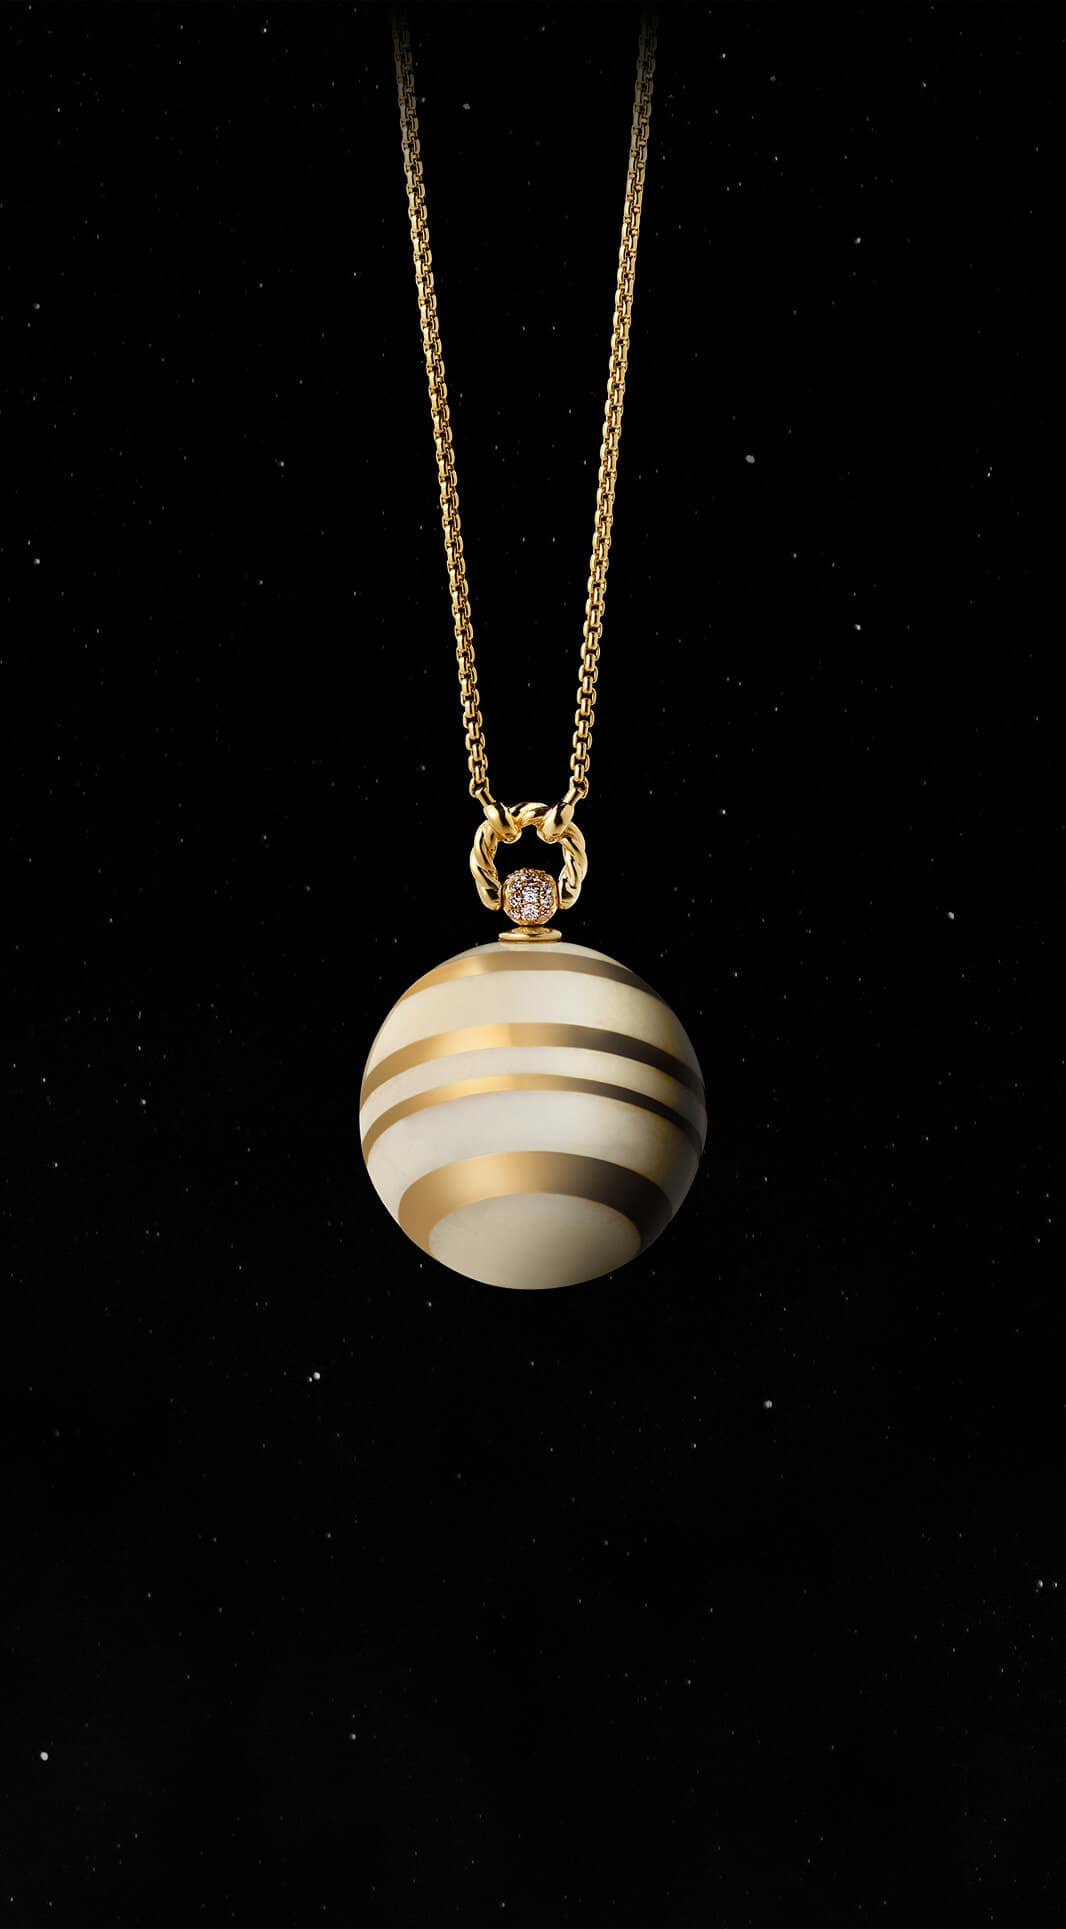 A color photo shows the David Yurman Solari Planet Venus pendant necklace in front of a starry night sky. The pendant is crafted from 18K yellow gold with white jasper and white diamonds.